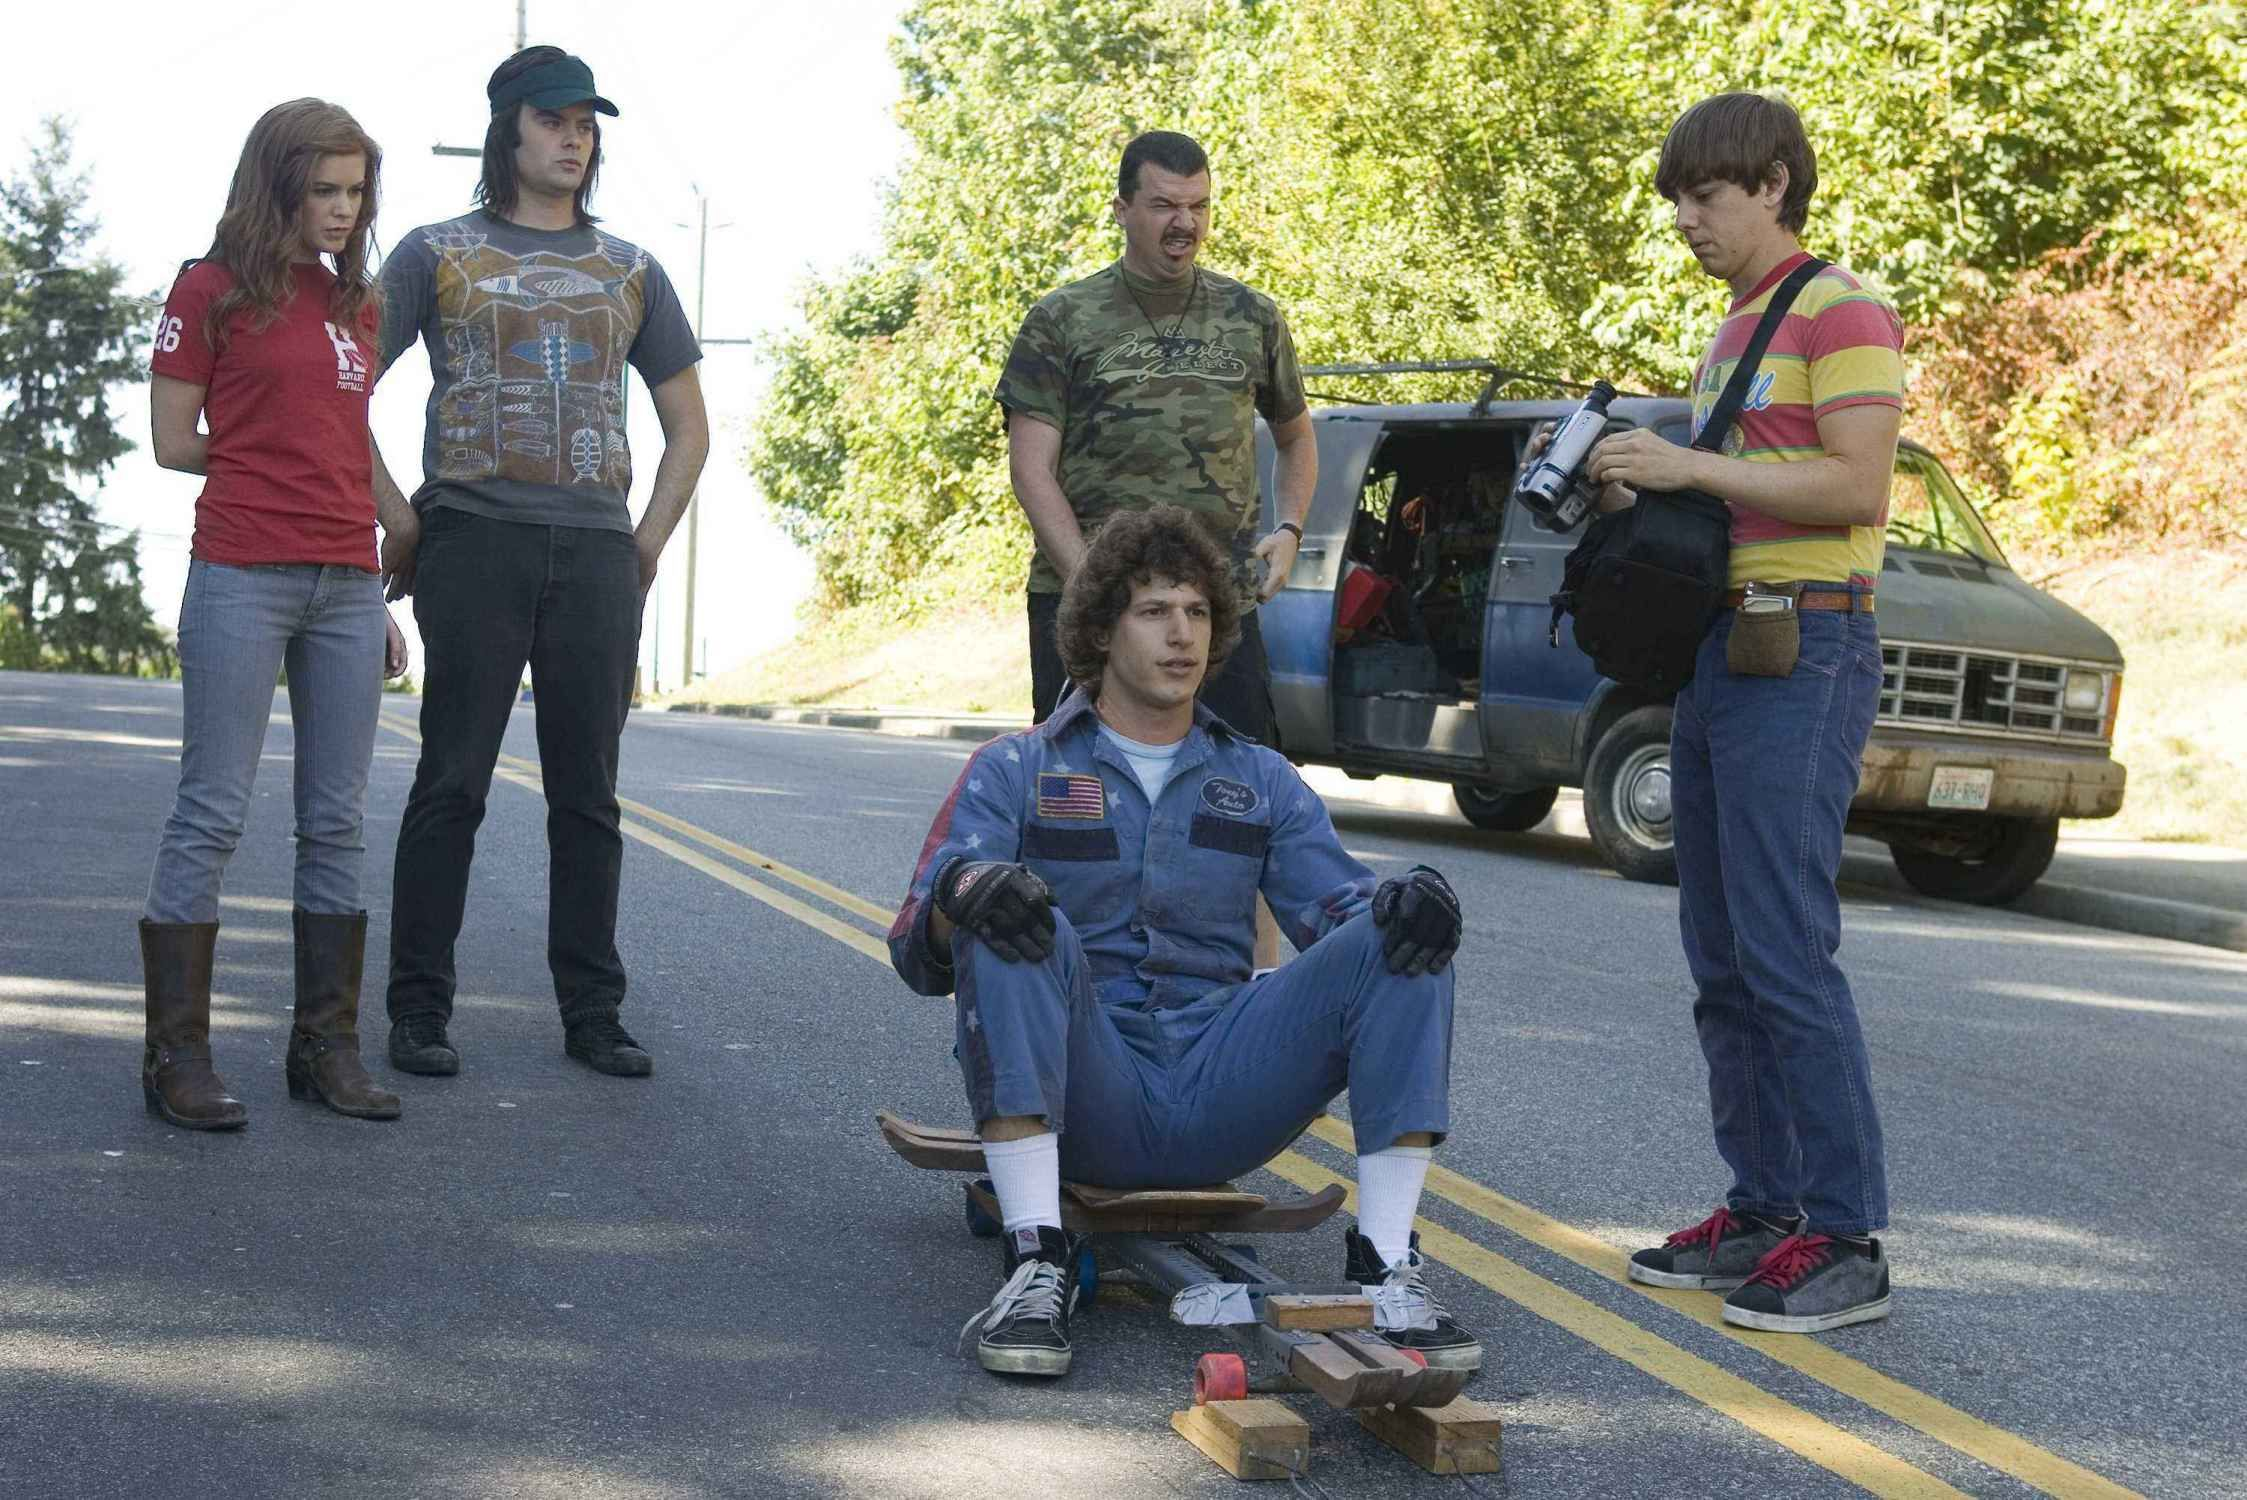 Hot Rod. Favorite Outfit Of Time And